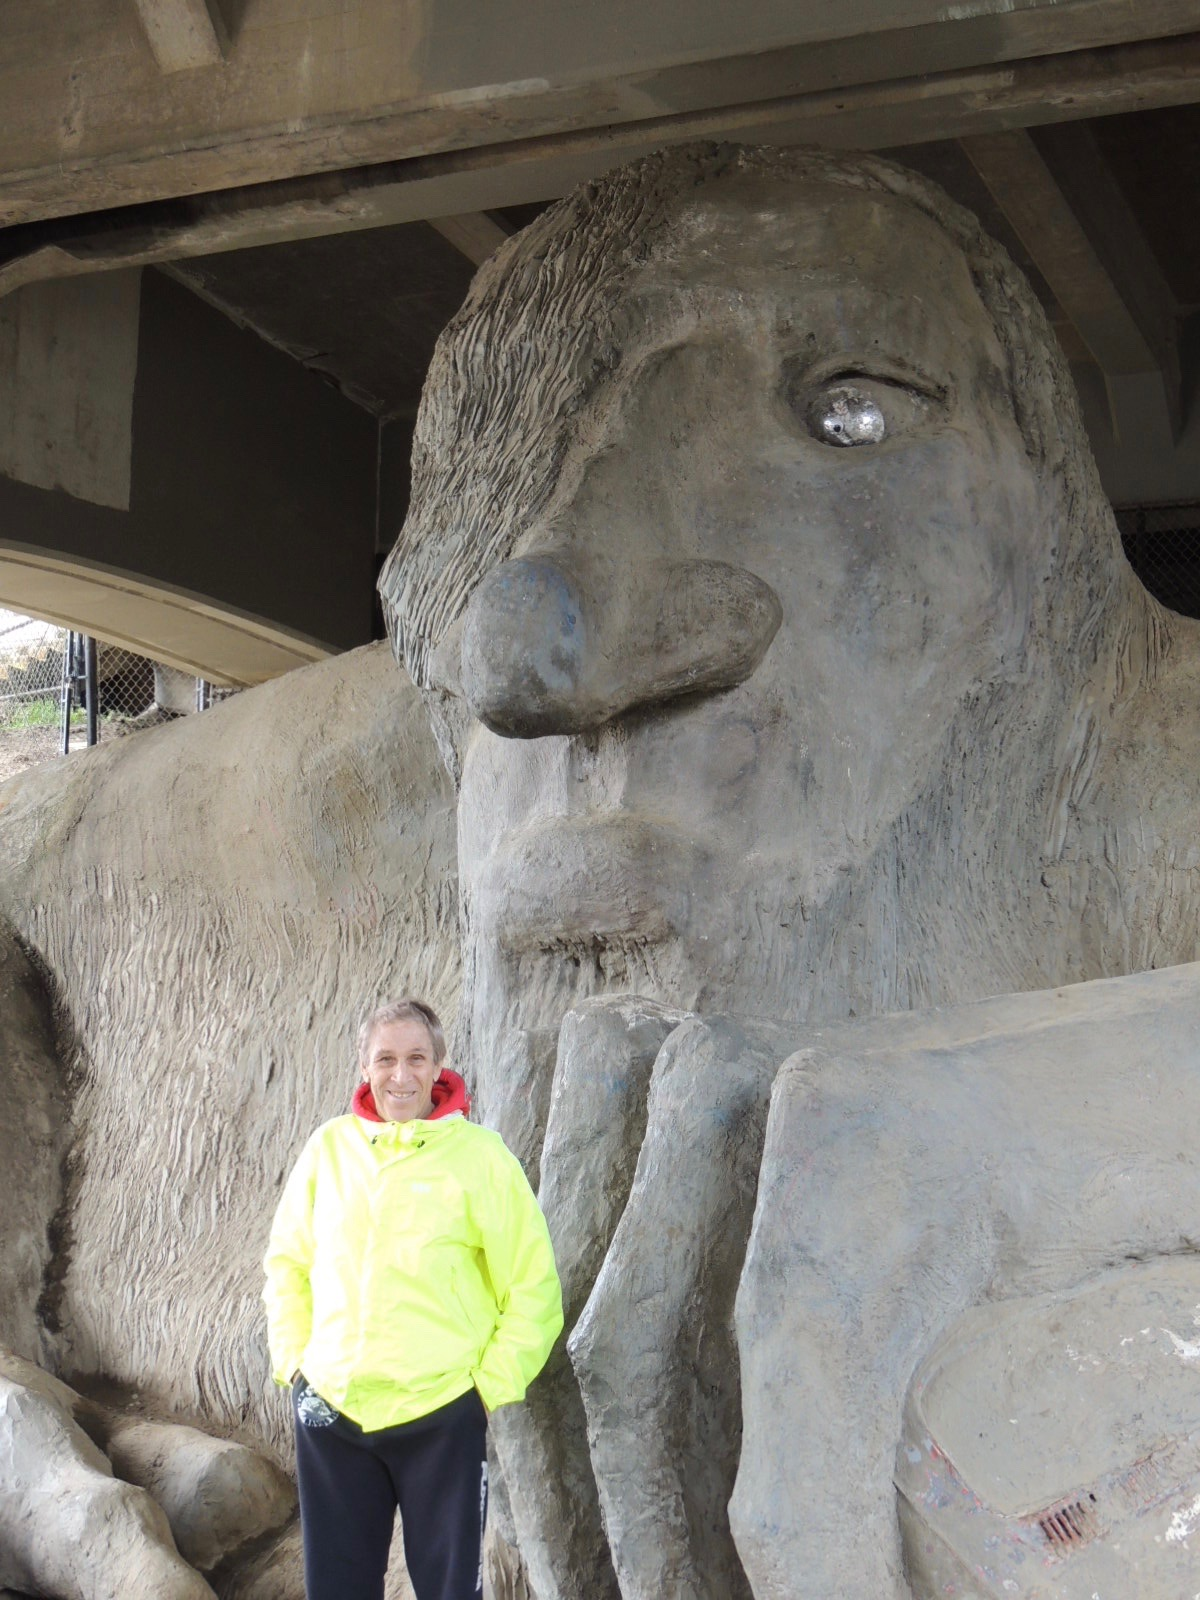 Bruce Wienke standing in front of the troll.